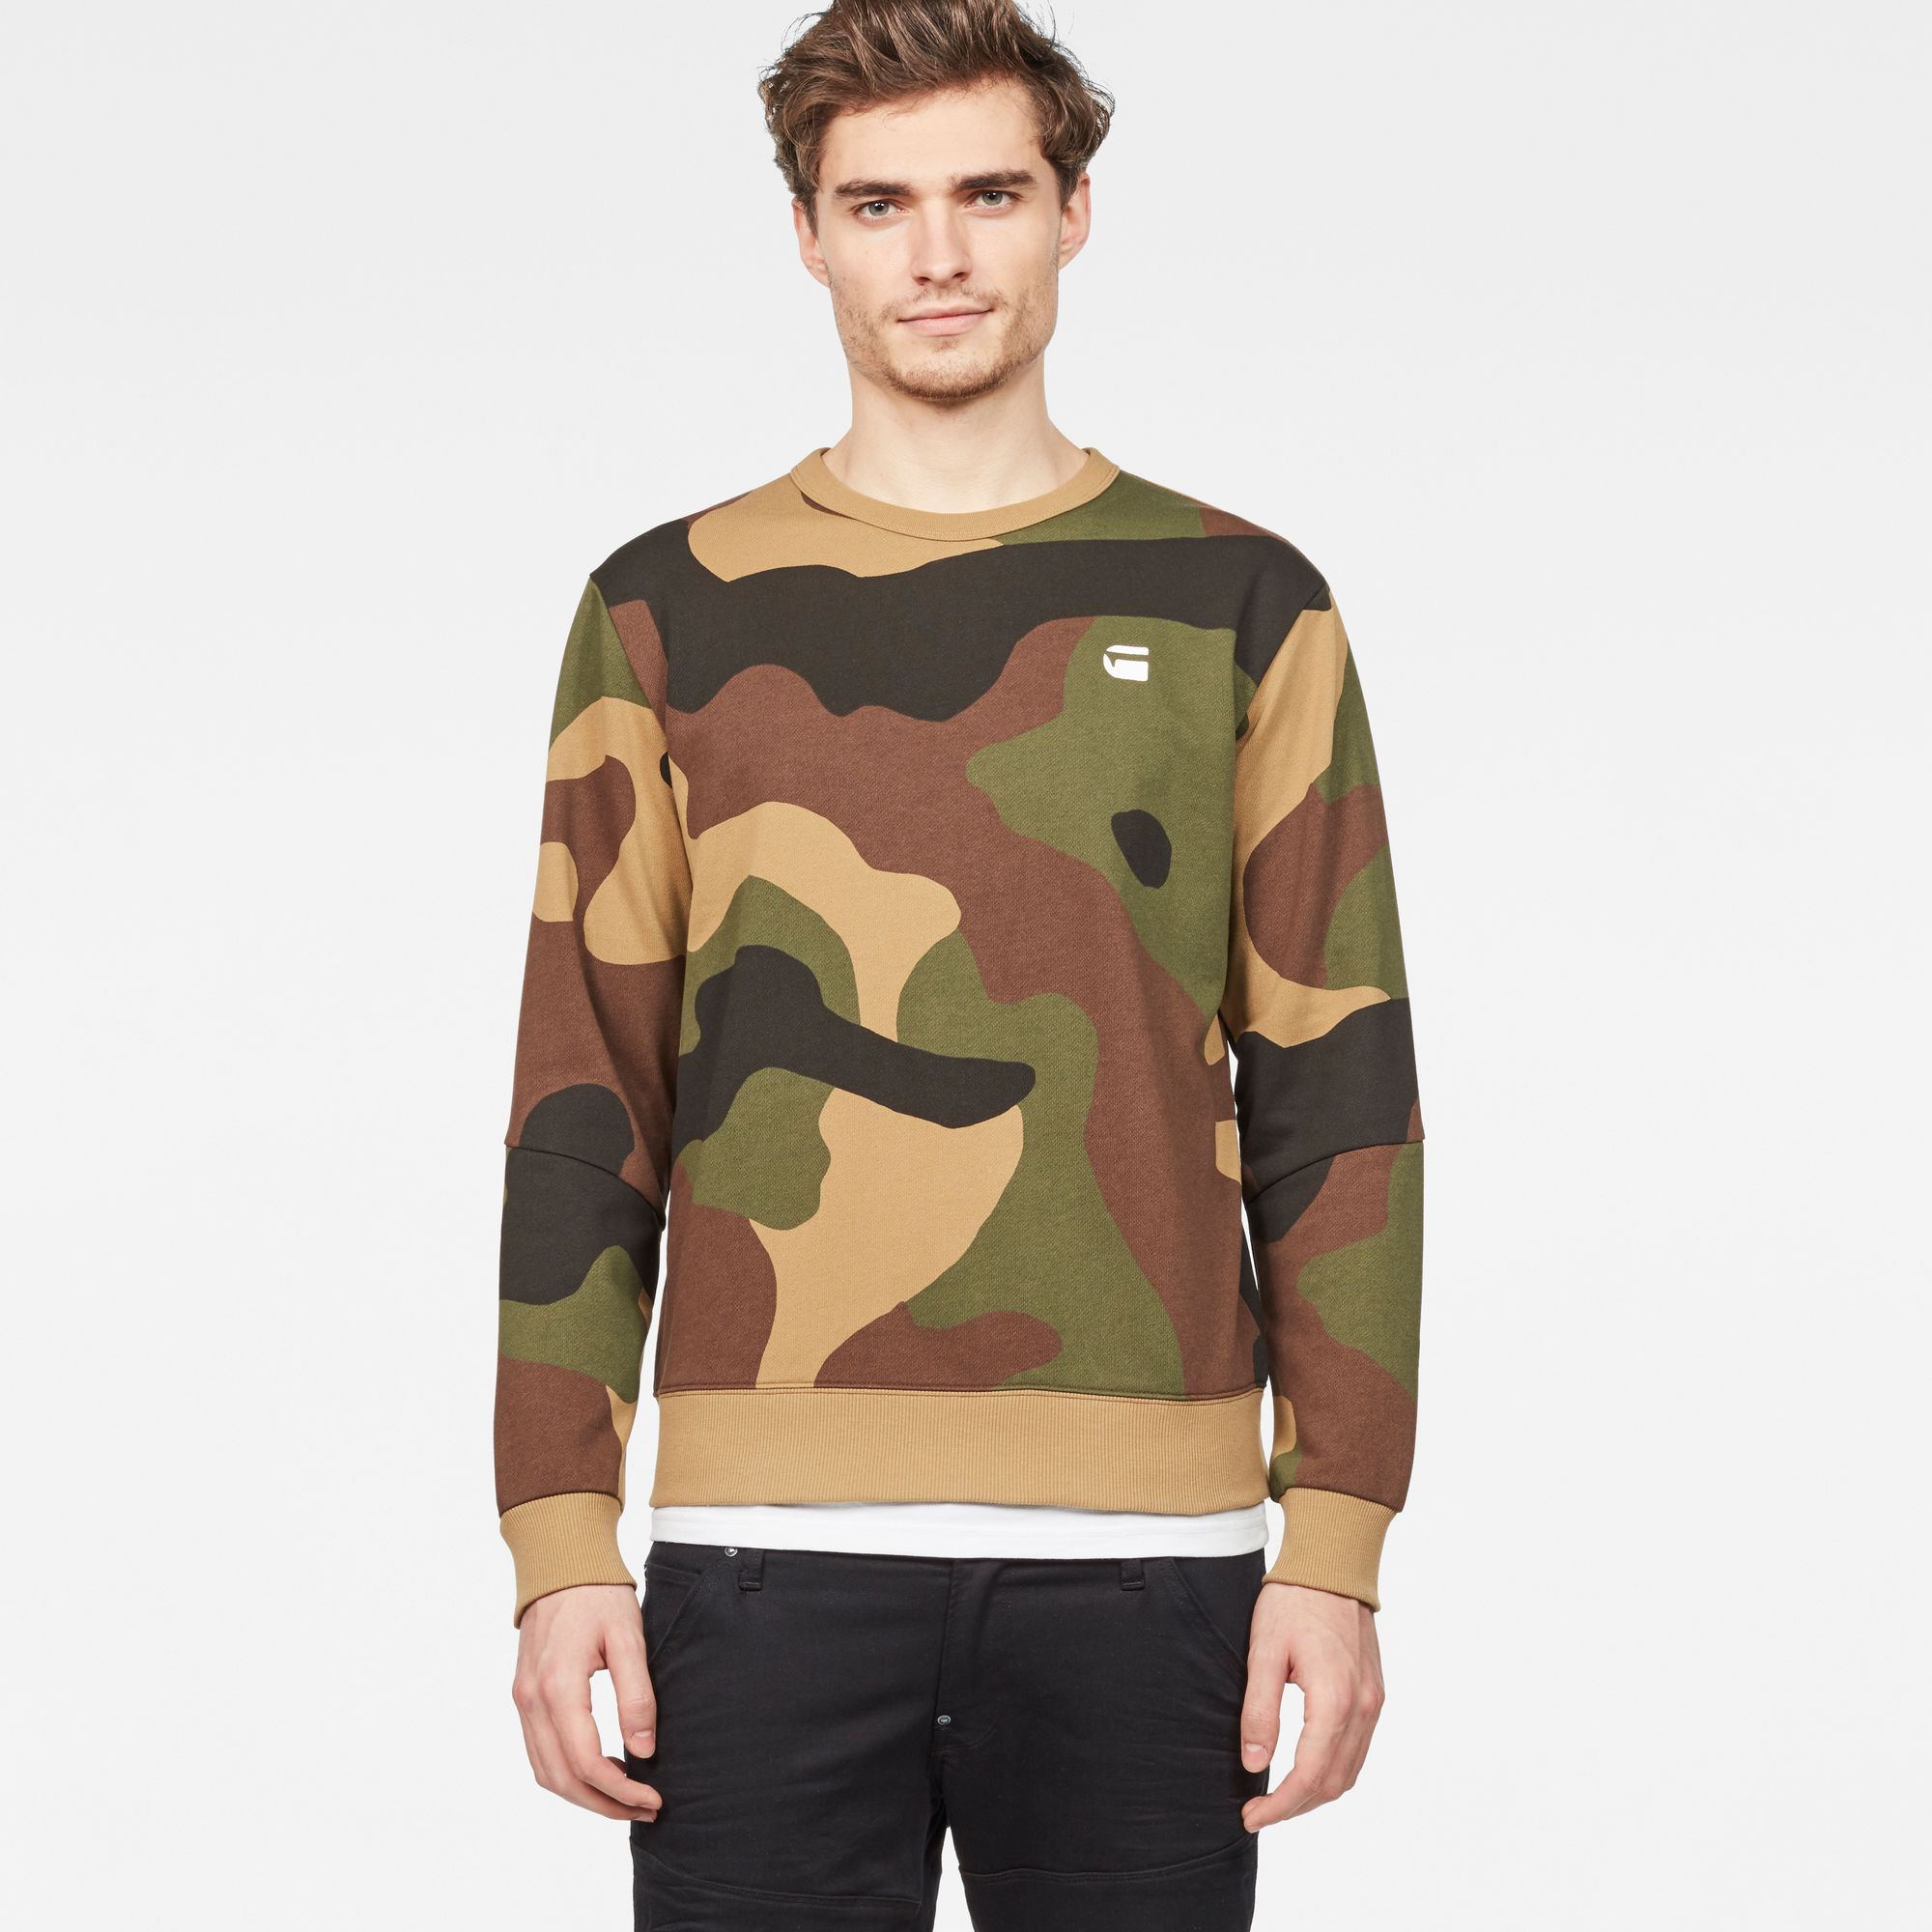 Image of G Star Raw Oversized Dutch Camo Stalt Deconstructed Sweater